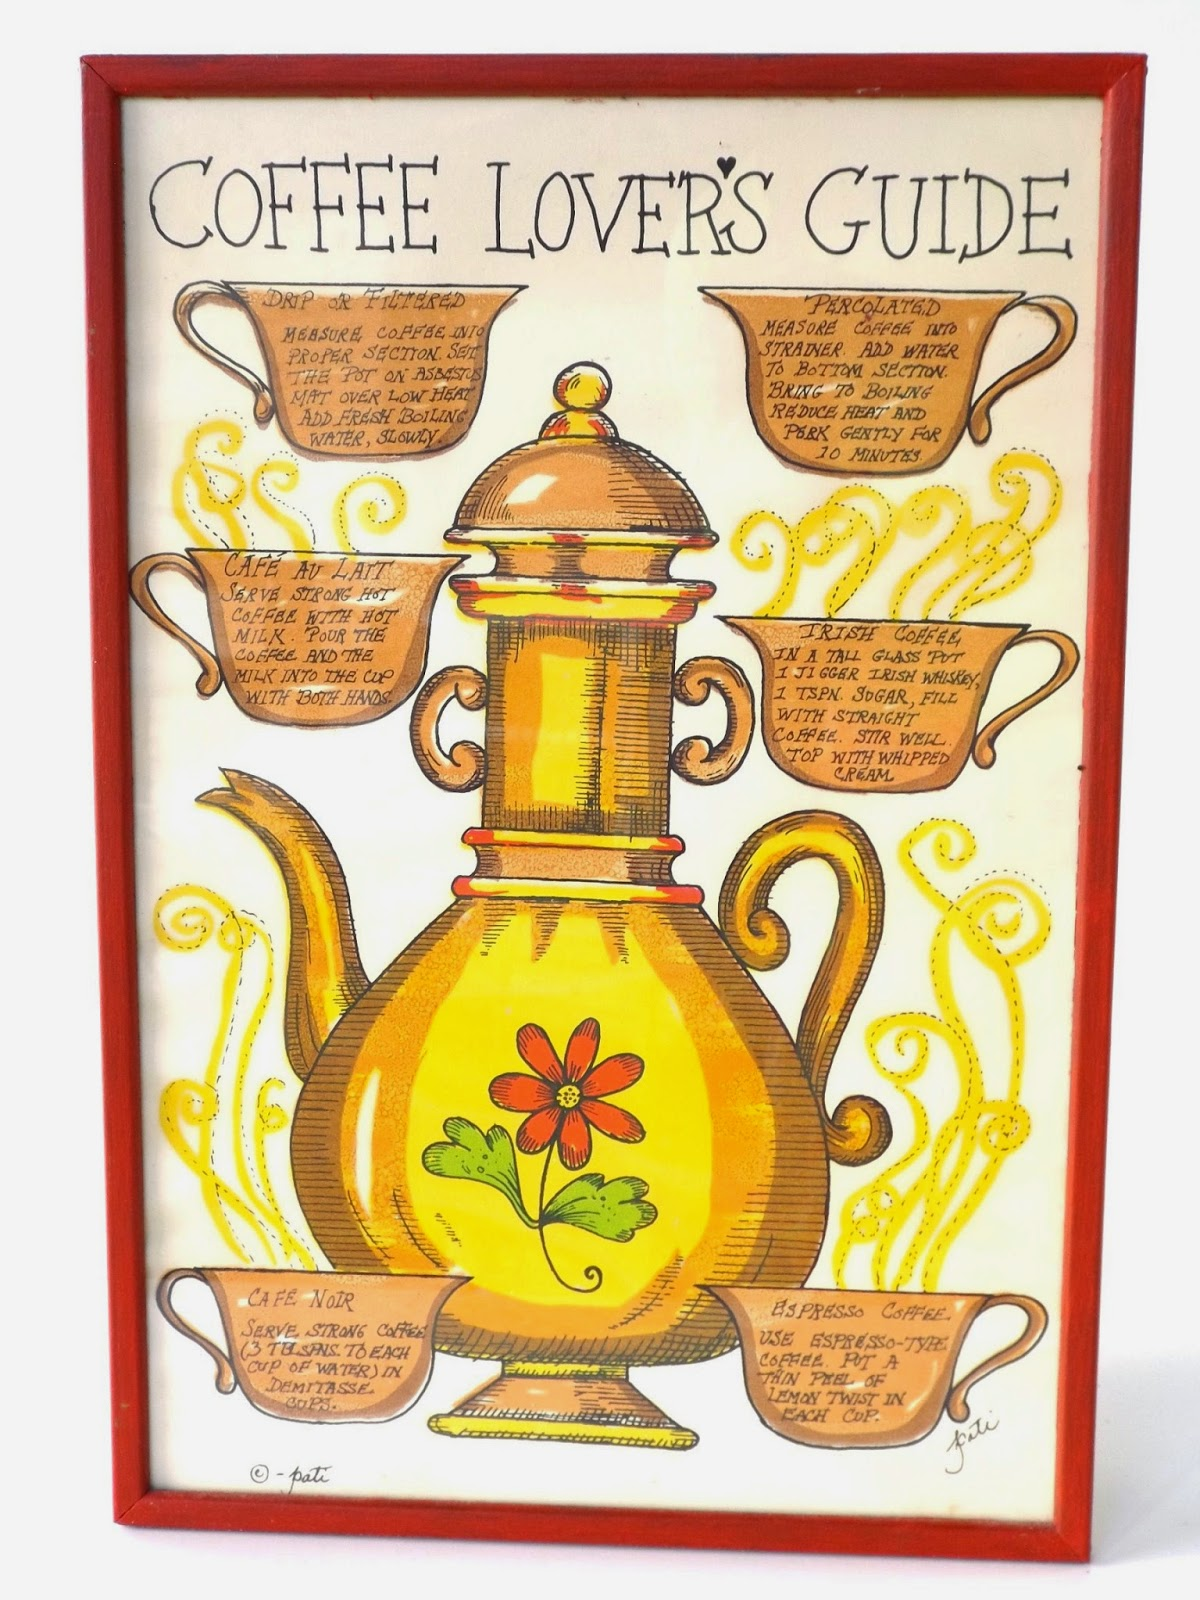 Vintage Artwork/ Wall Hanging/ Coffee Lovers Guide/ Red/Framed / Art/ Tea  Pot/ Tea Cup/ Print/ Kitchen Print/ Signed Pati/ Soovia Janis Inc